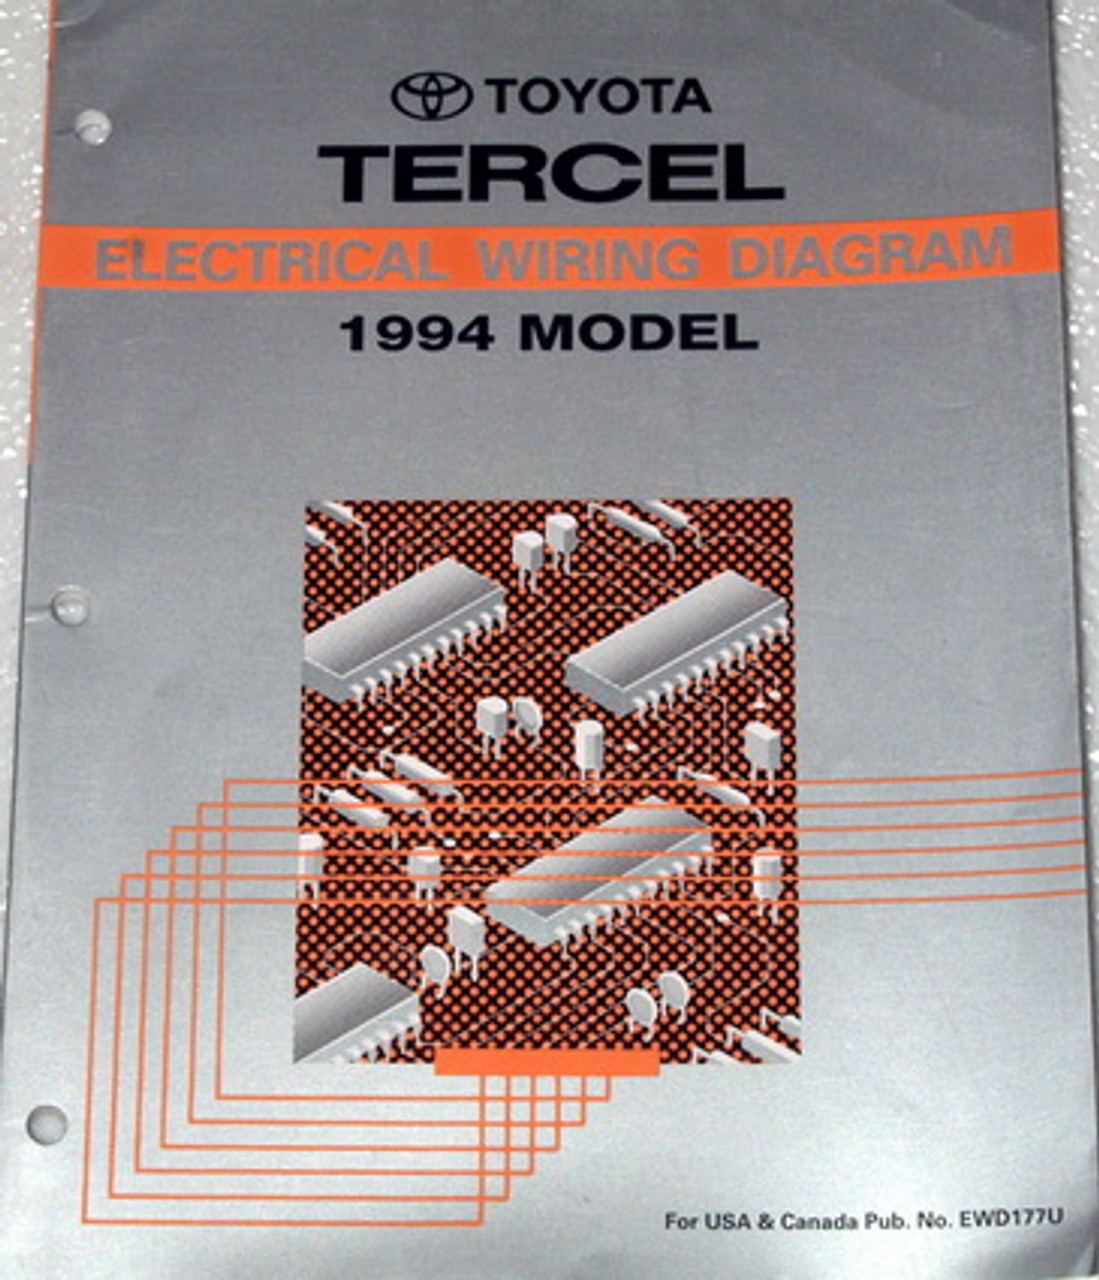 1994 Toyota Tercel Electrical Wiring Diagrams Original